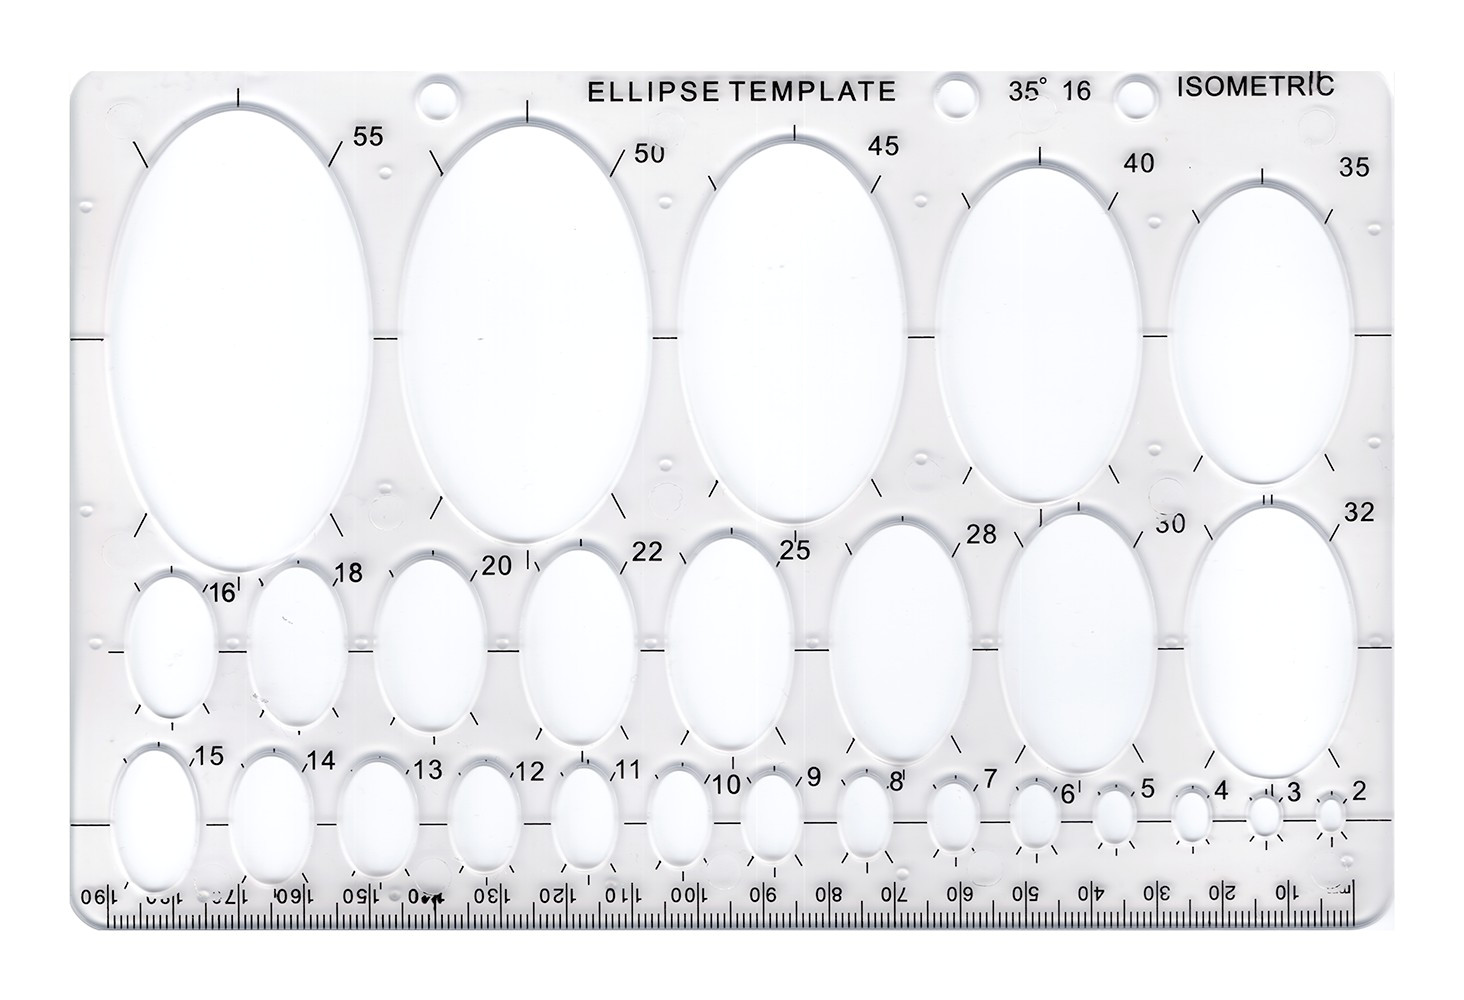 Elipse Template Ellipses Template Ebay